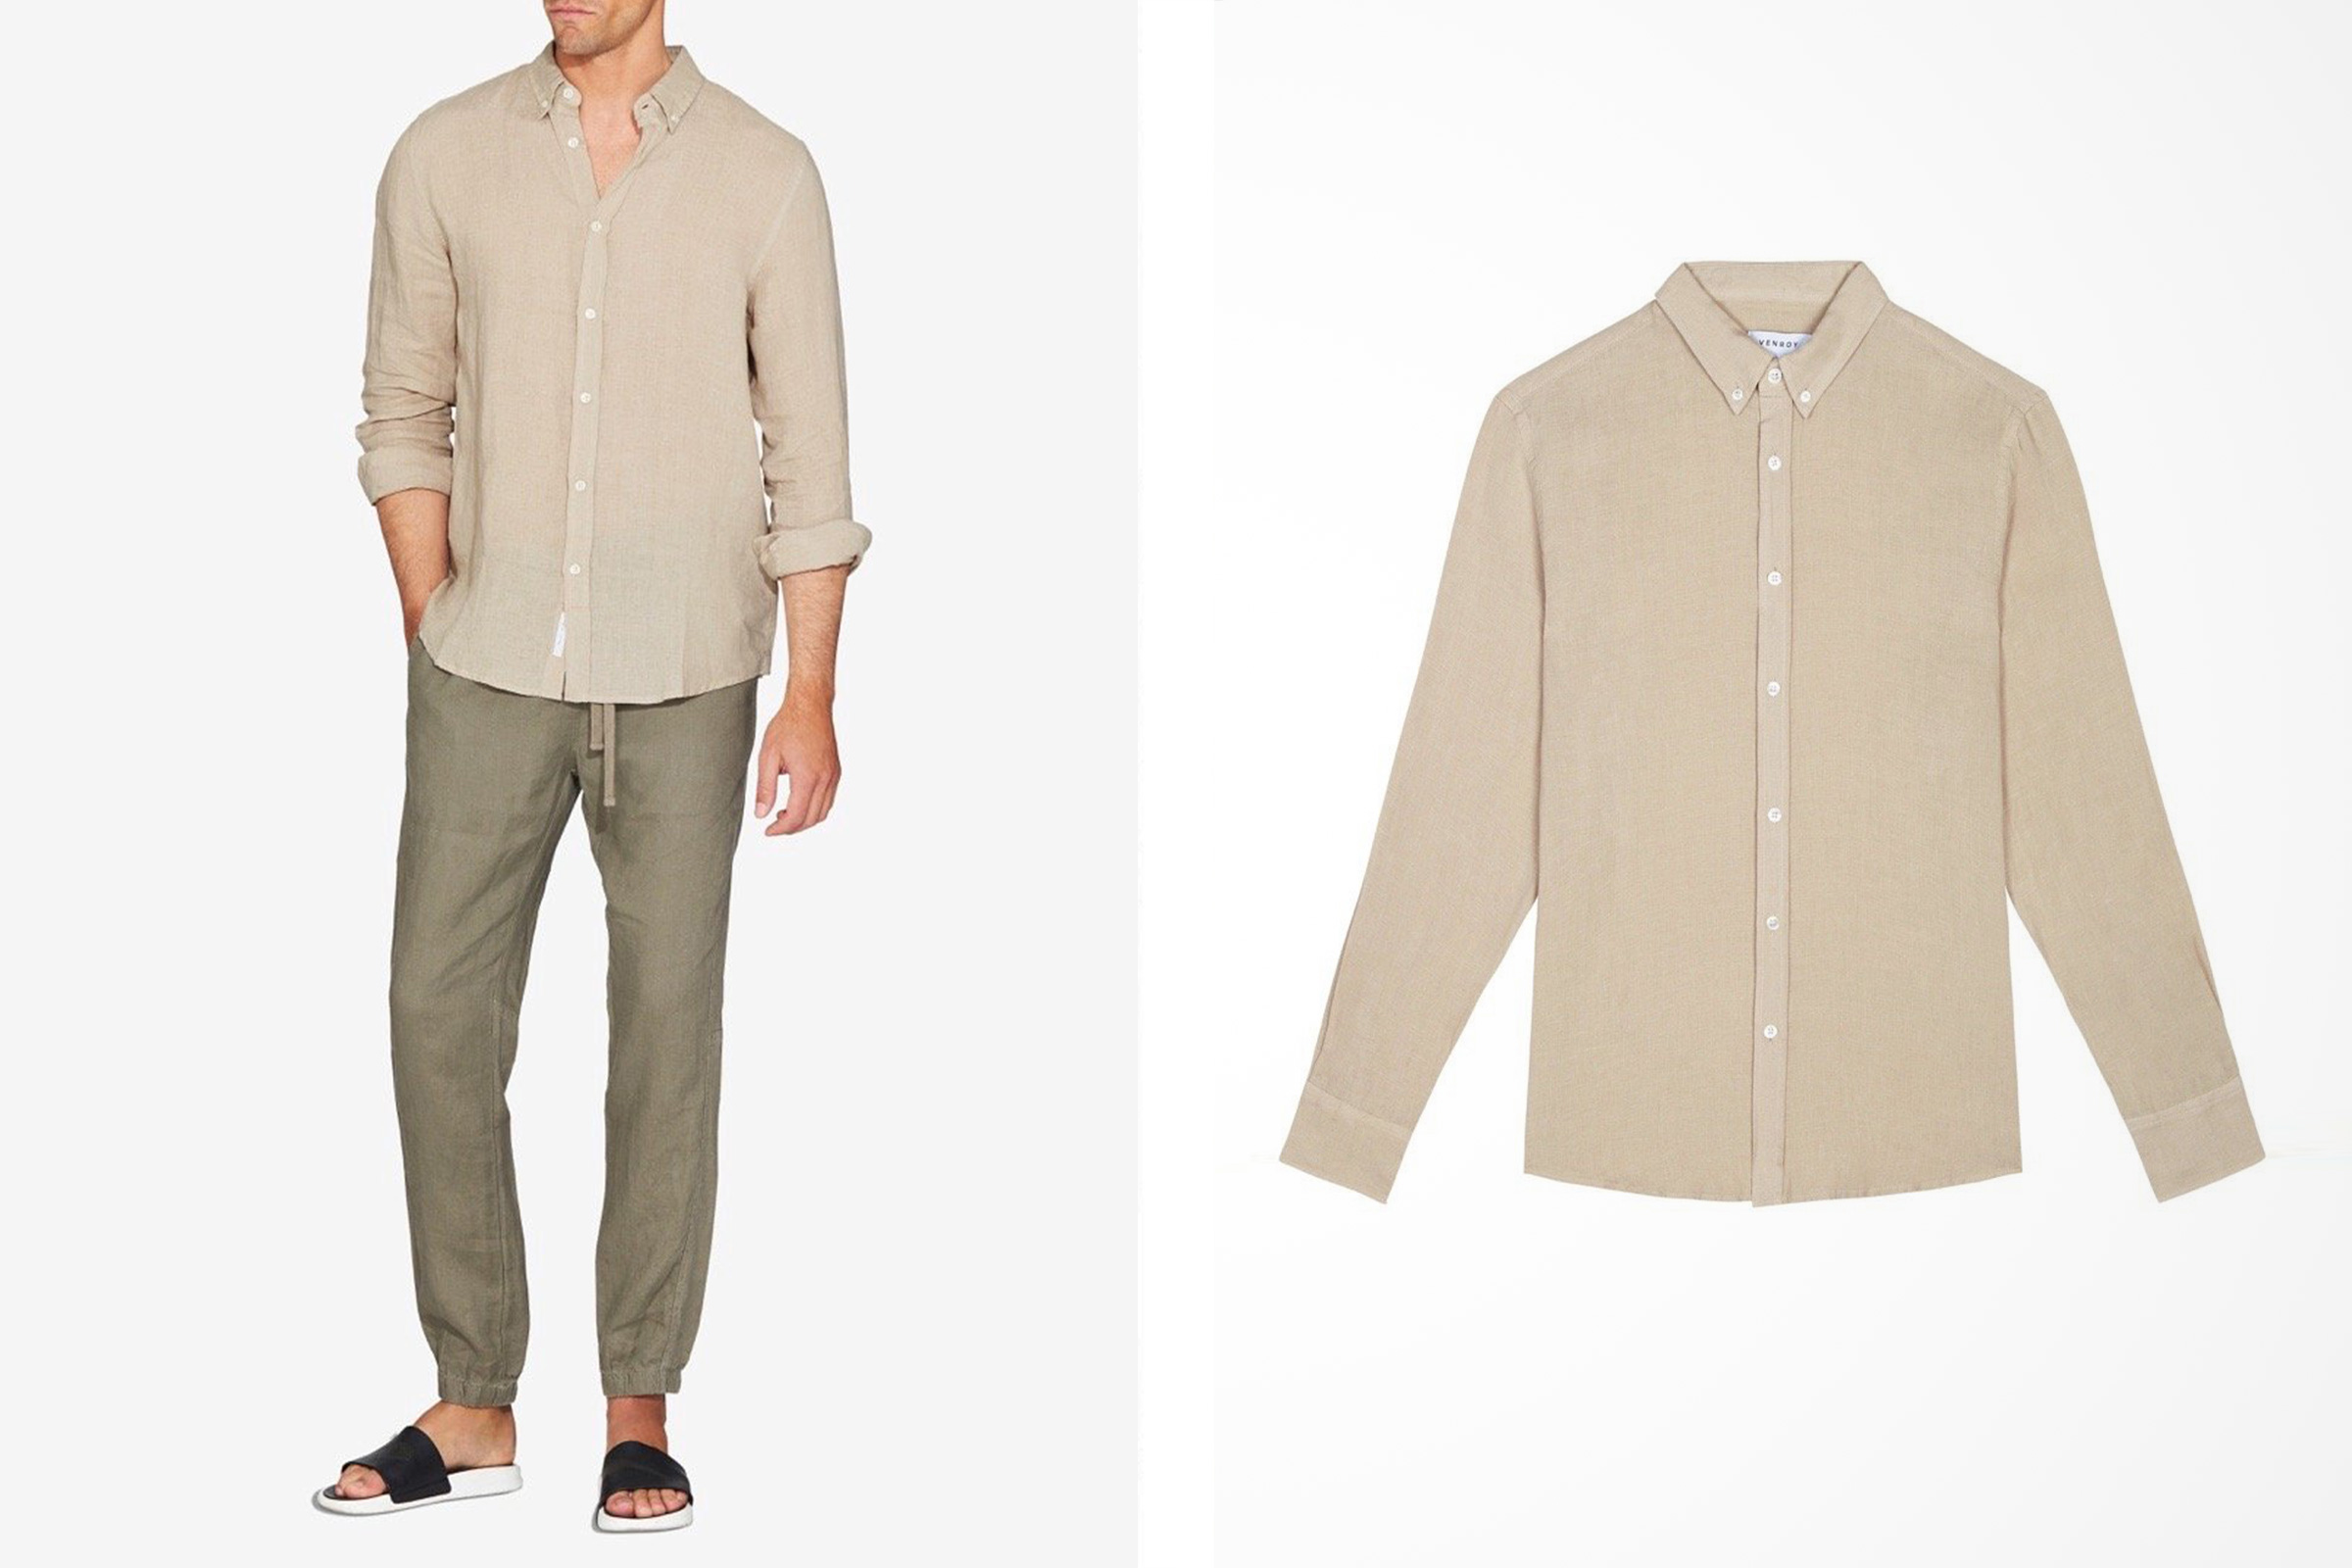 10 Summer Fashion Essentials For Men - Hey Gents